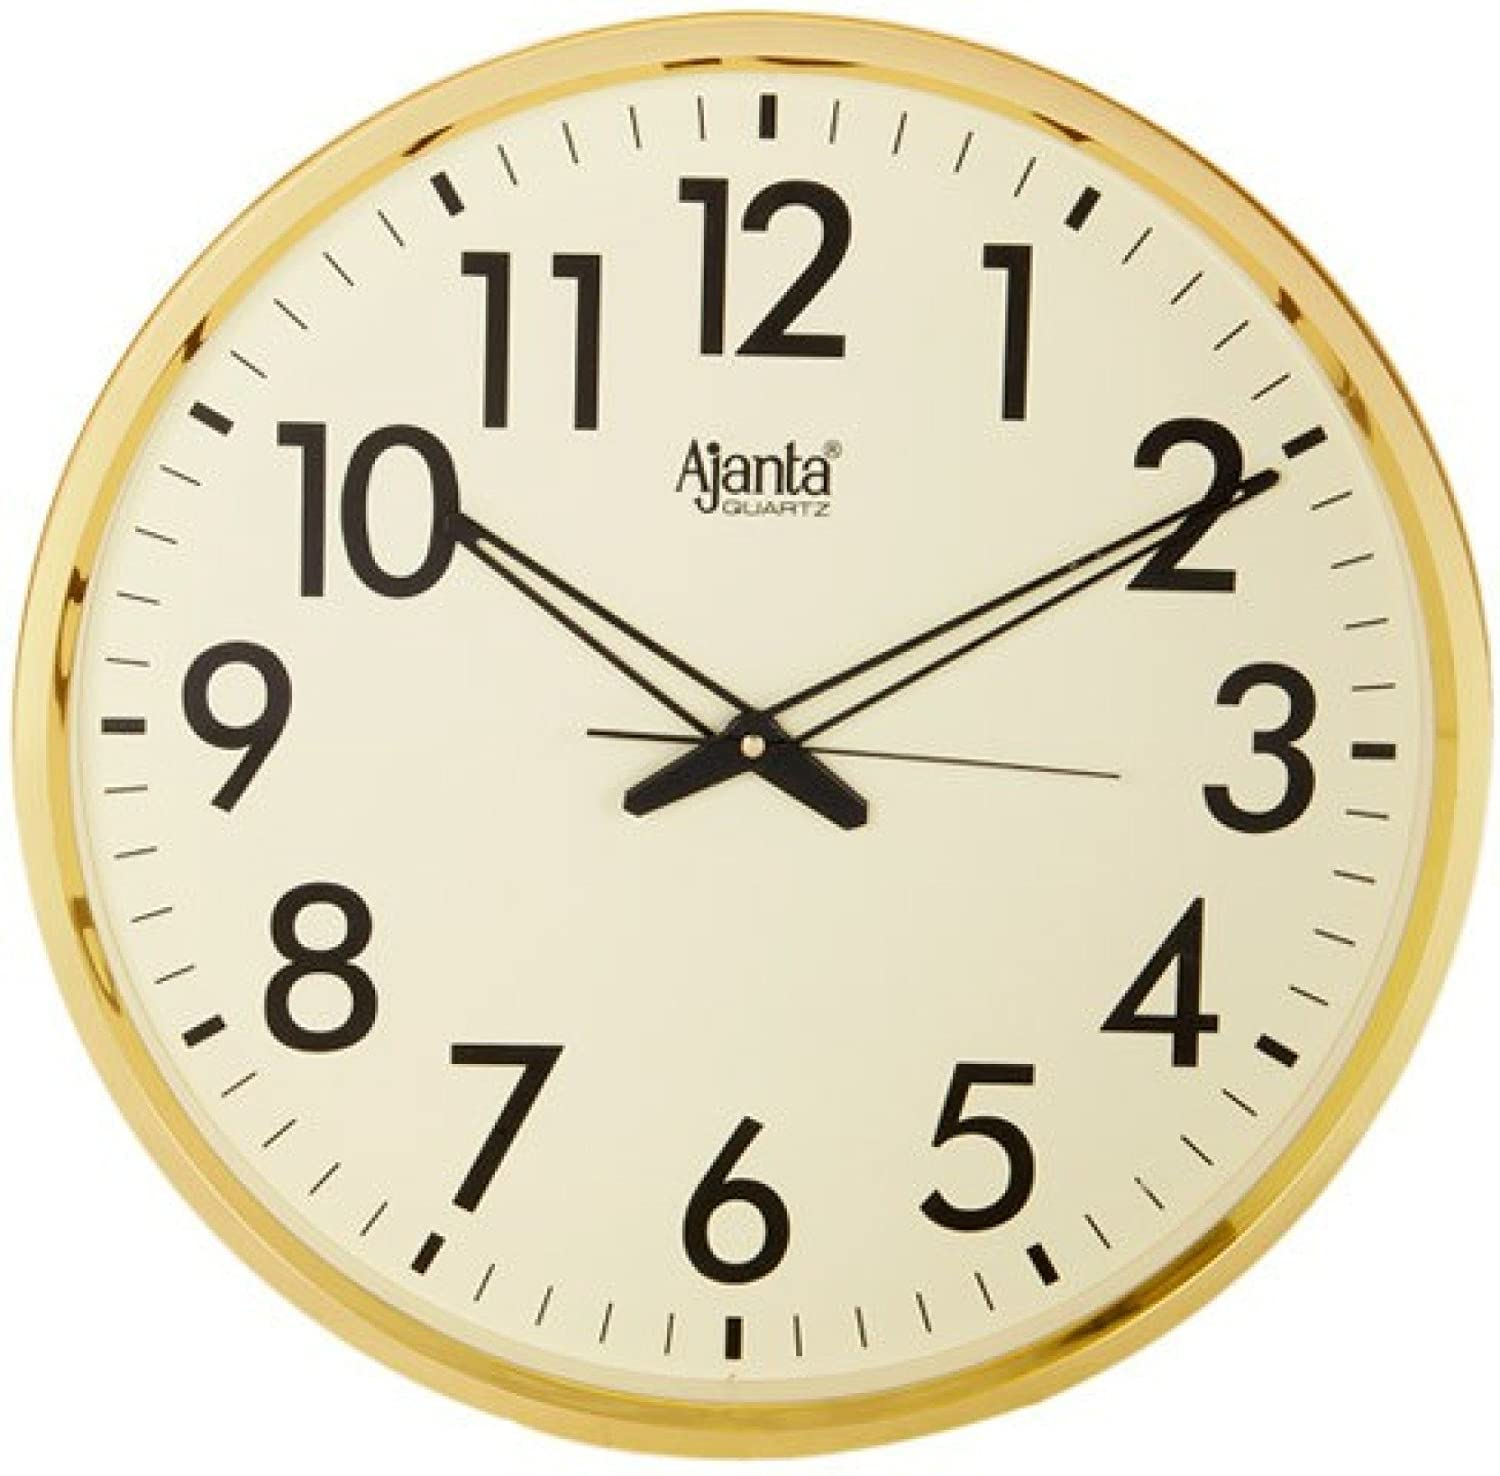 Buy ajanta quartz wall clock 32 cm x 32 cm x 2 cm white dial and buy ajanta quartz wall clock 32 cm x 32 cm x 2 cm white dial and silver rim online at low prices in india amazon amipublicfo Choice Image